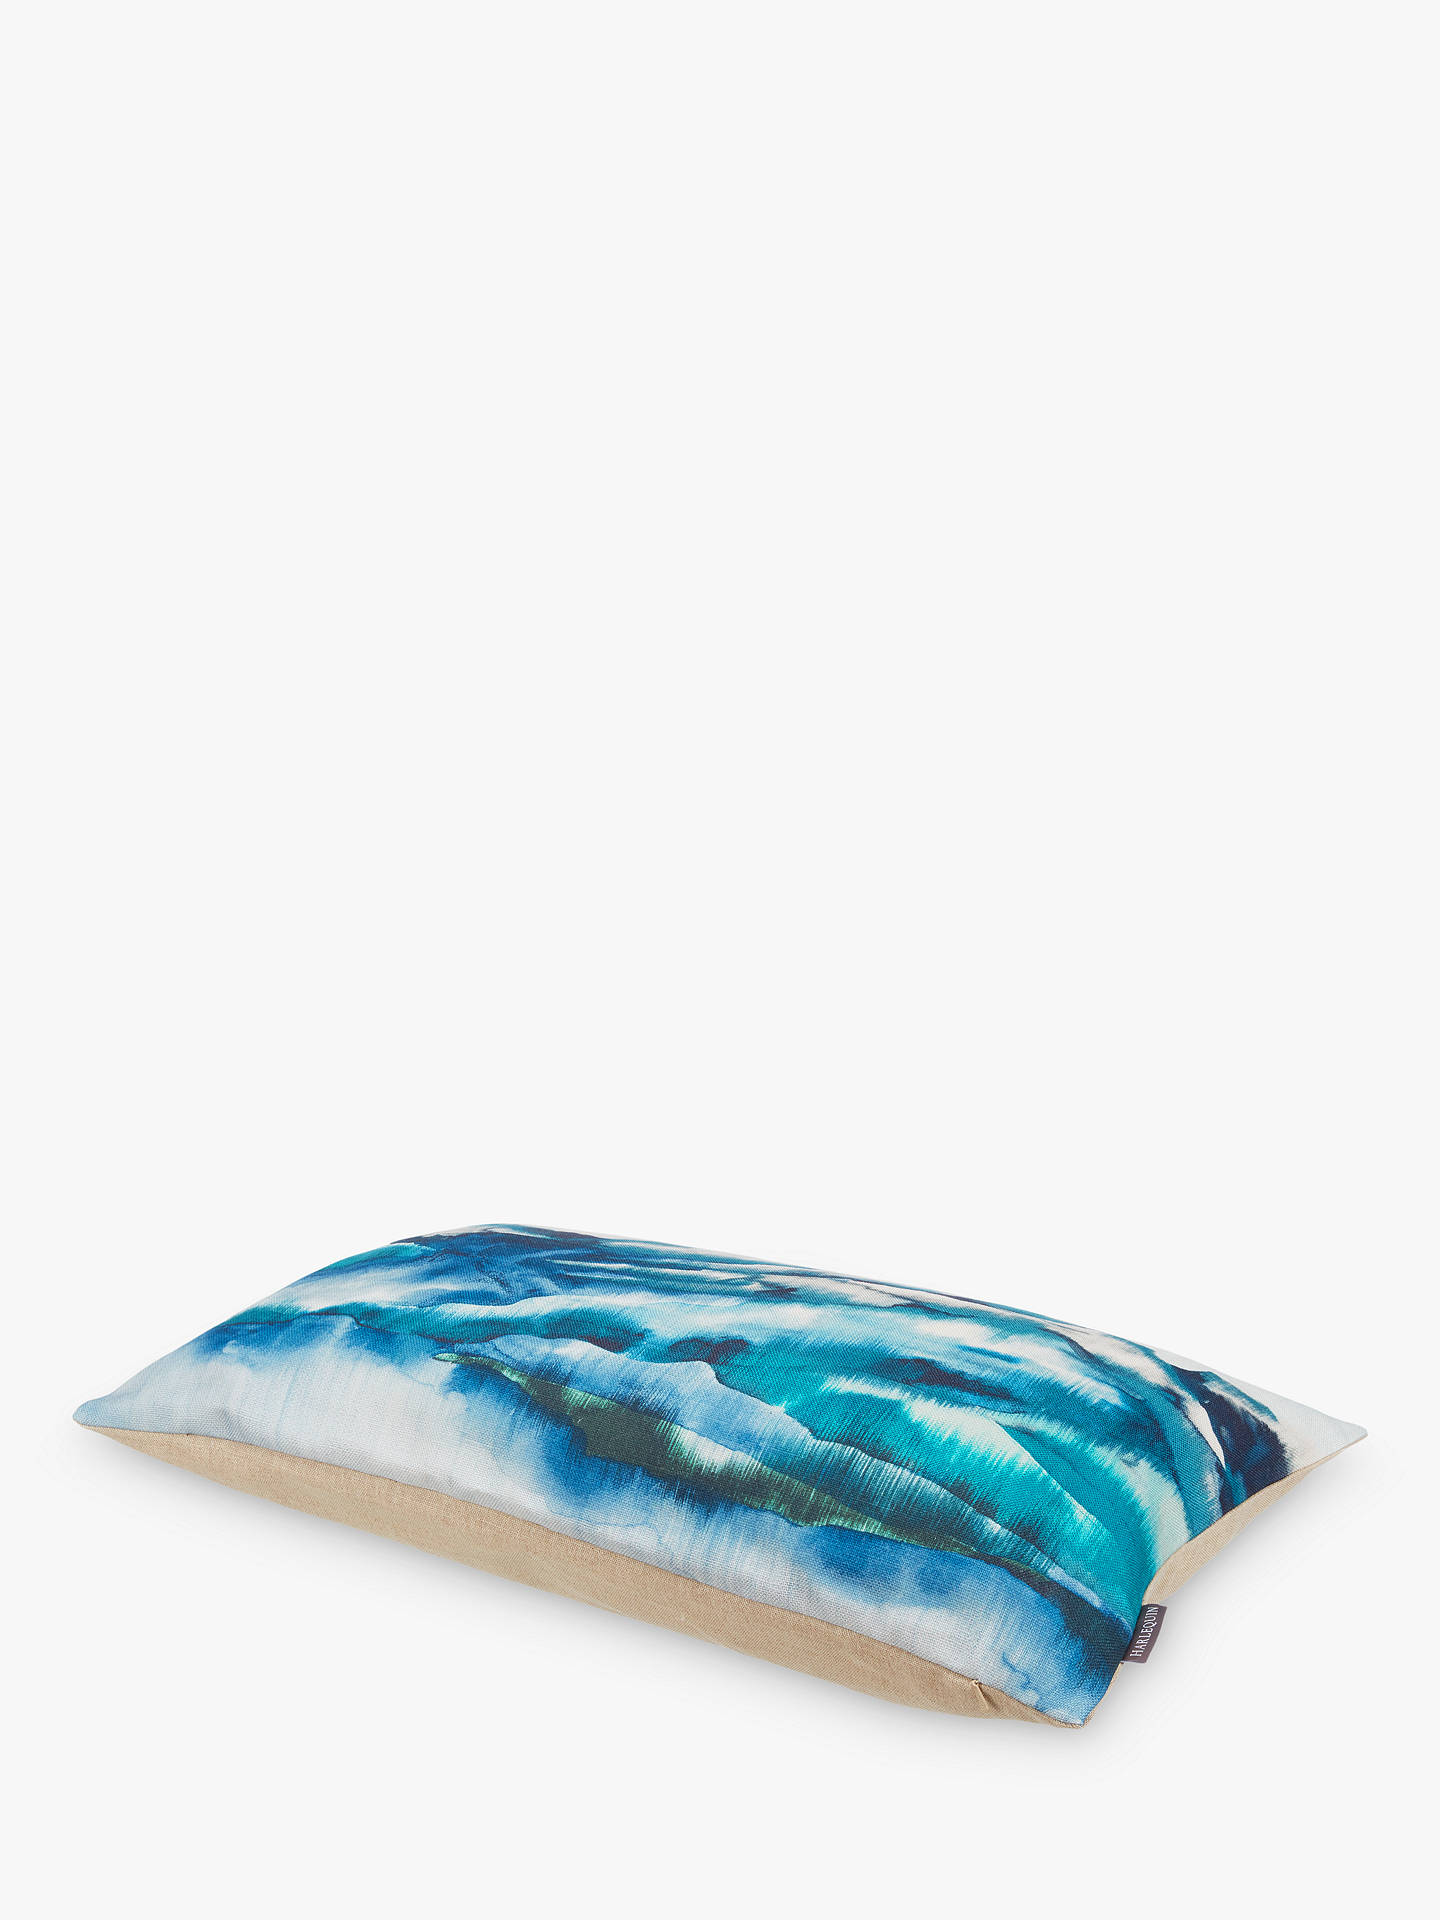 BuyHarlequin Kailani Mount Cushion, Teal Online at johnlewis.com